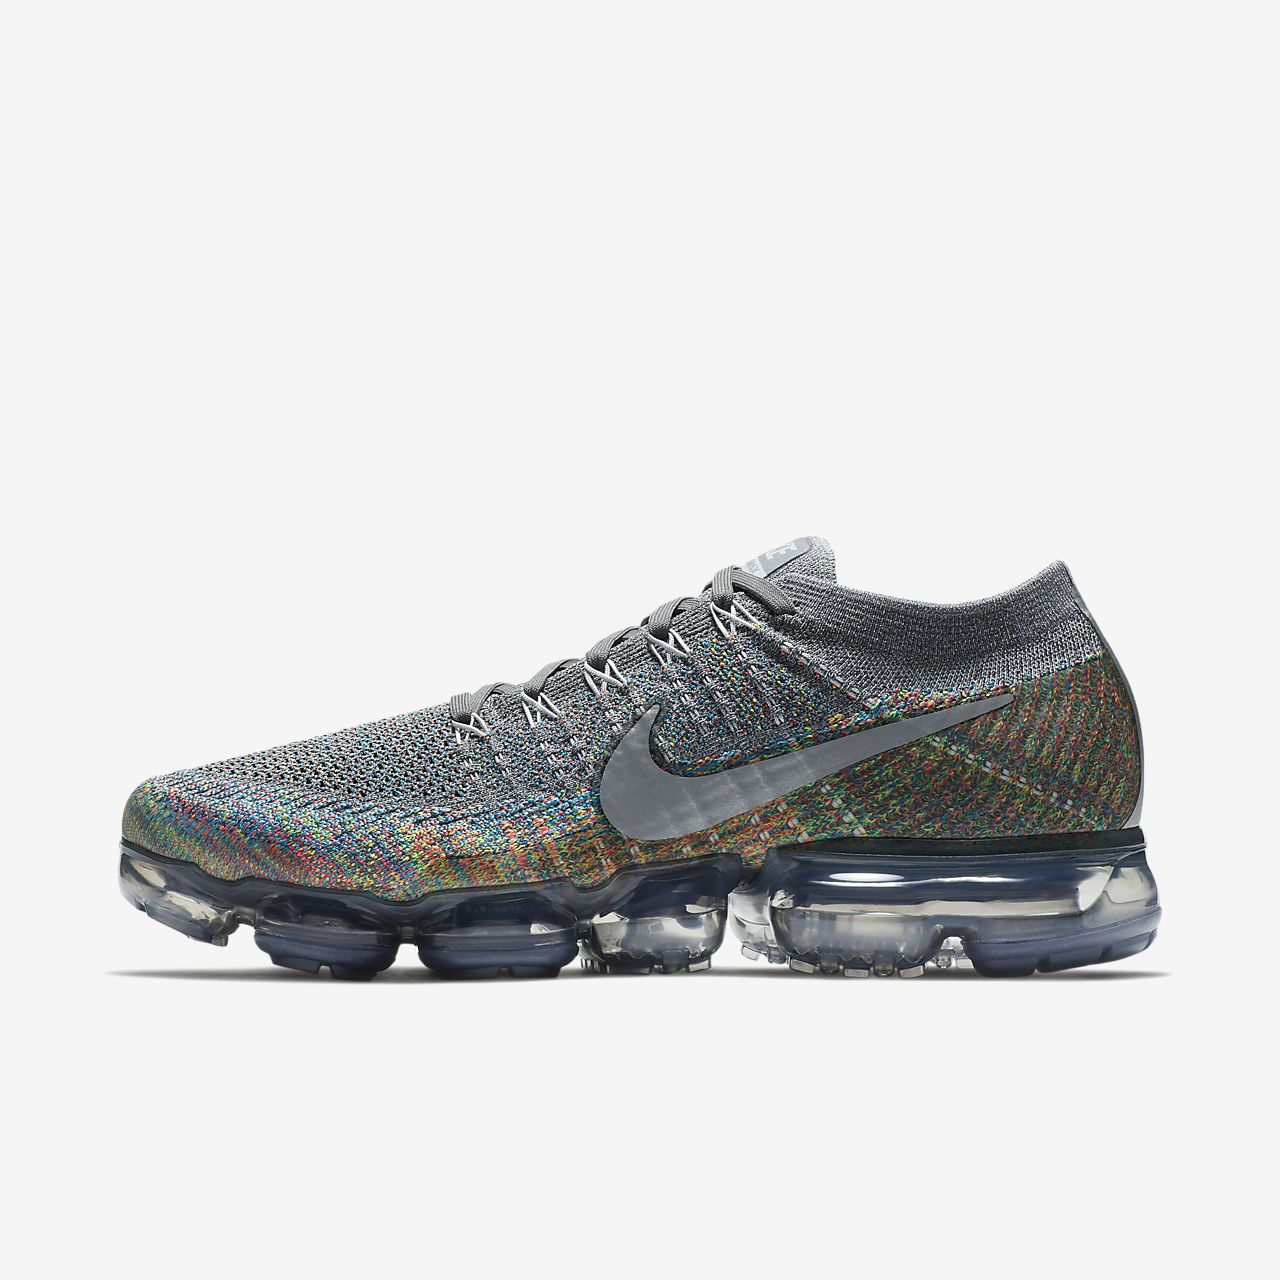 hot sale online 97c5c 963a8 Low Resolution Nike Air VaporMax Flyknit Herrenschuh Nike Air VaporMax  Flyknit Herrenschuh